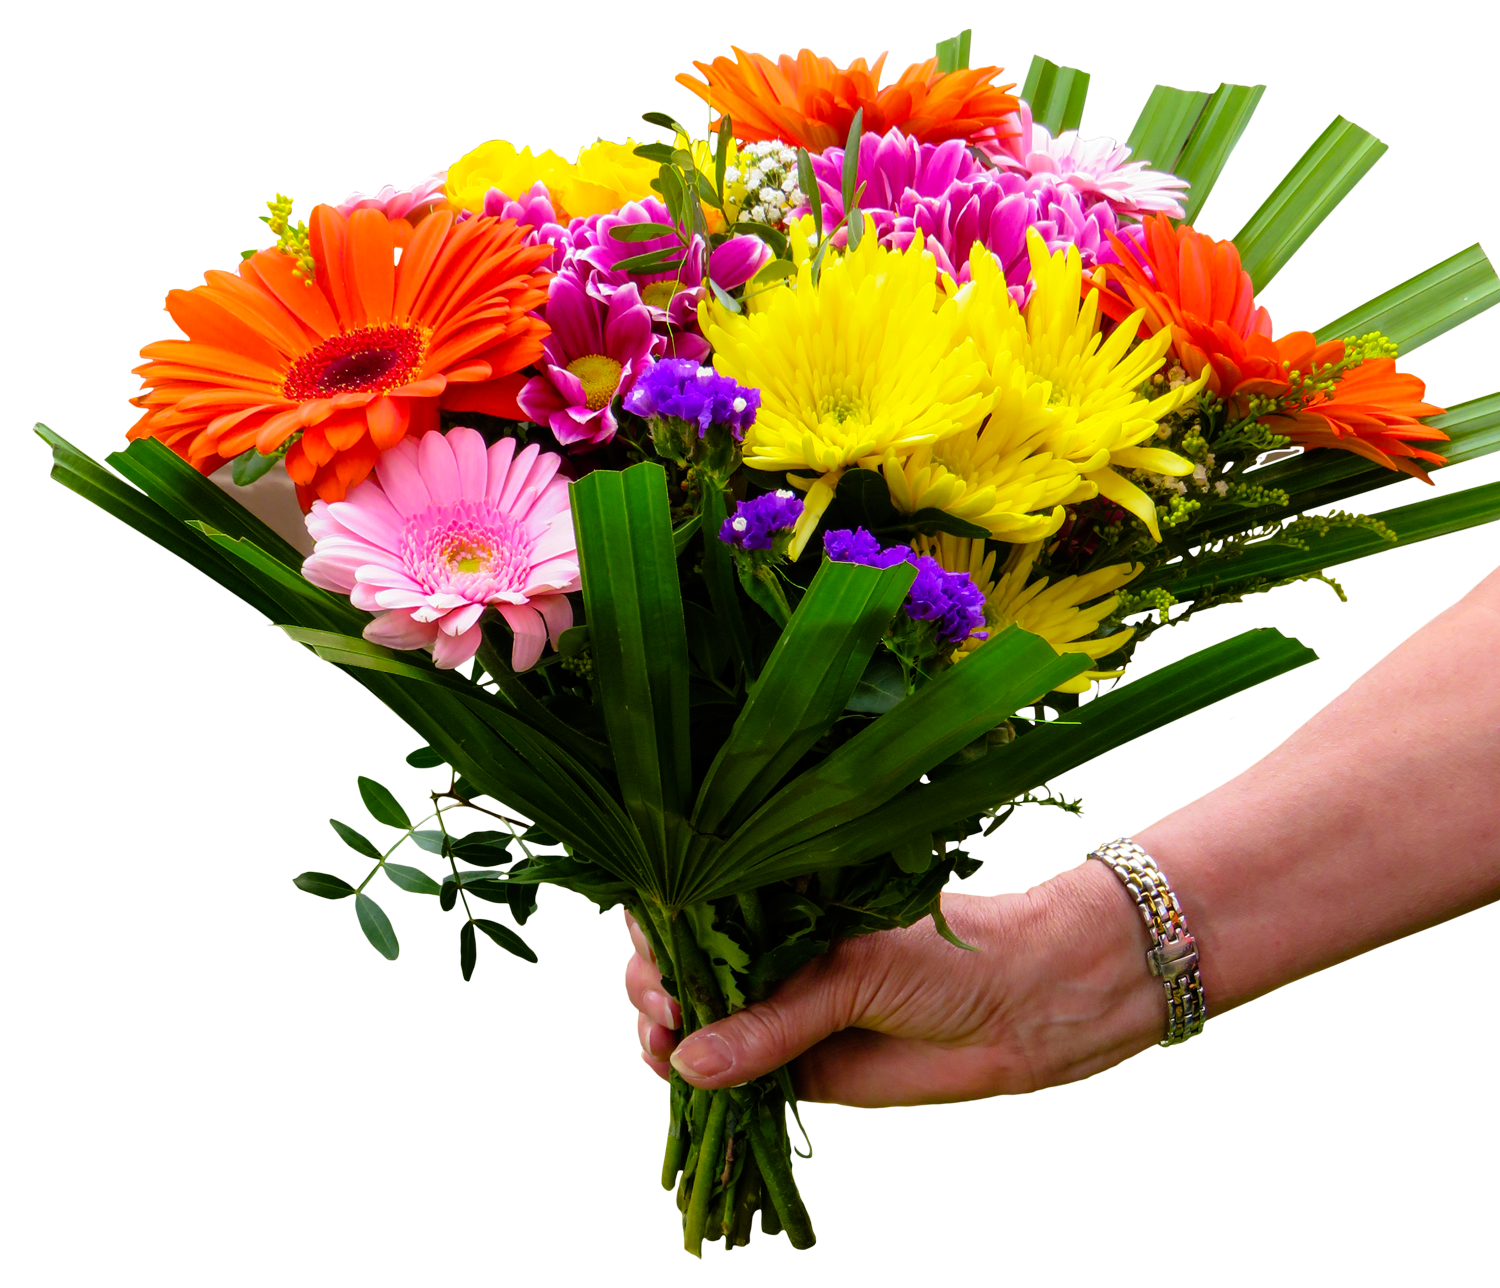 Image purepng free transparent. Flower bouquet png